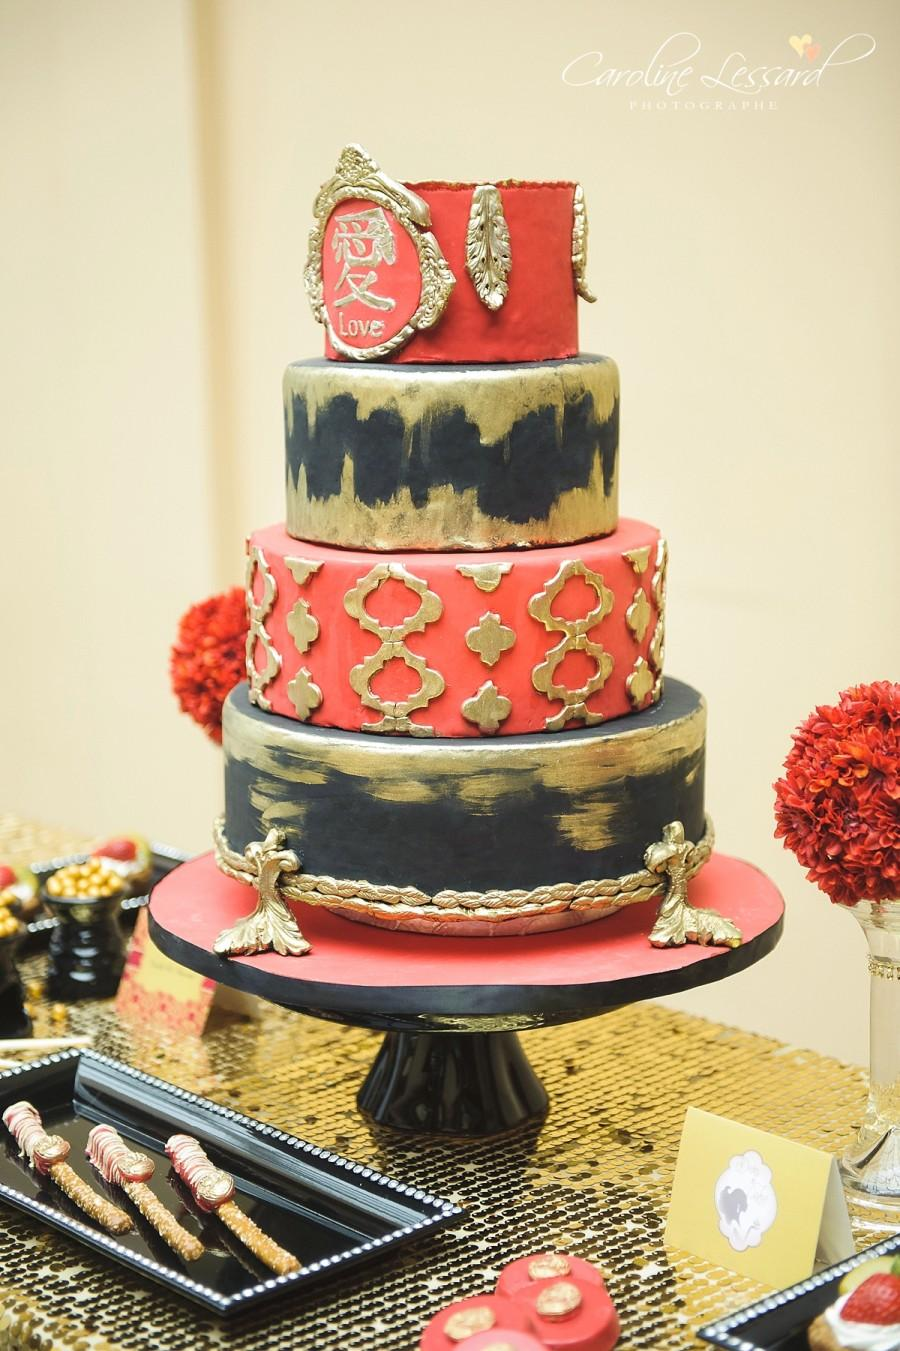 Red Black And Gold Wedding Cake #2515798 - Weddbook